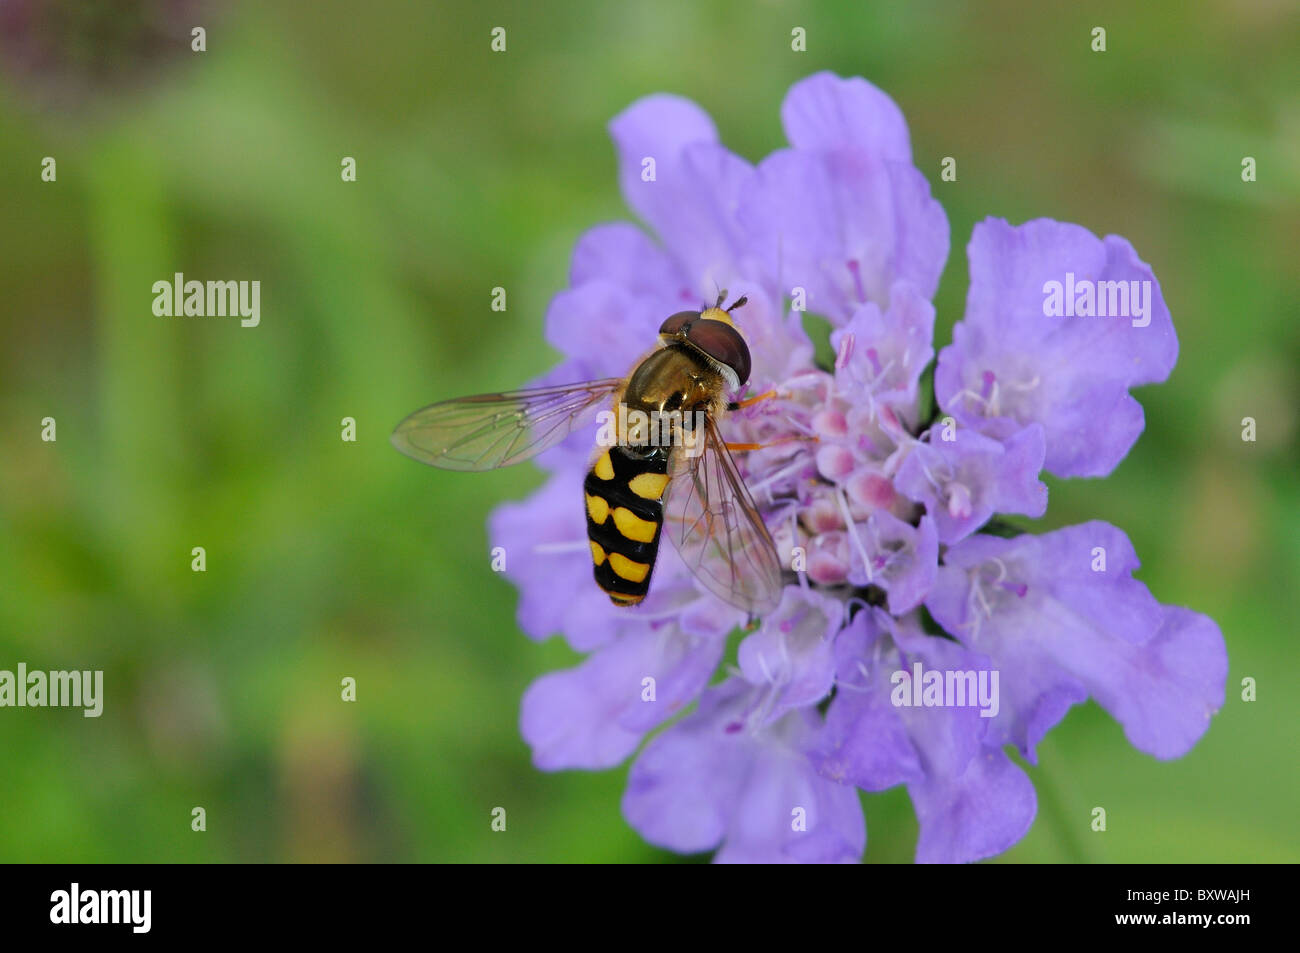 Hover-fly (Eupeodes species) feeding on scabious flower, Oxfordshire, UK. - Stock Image